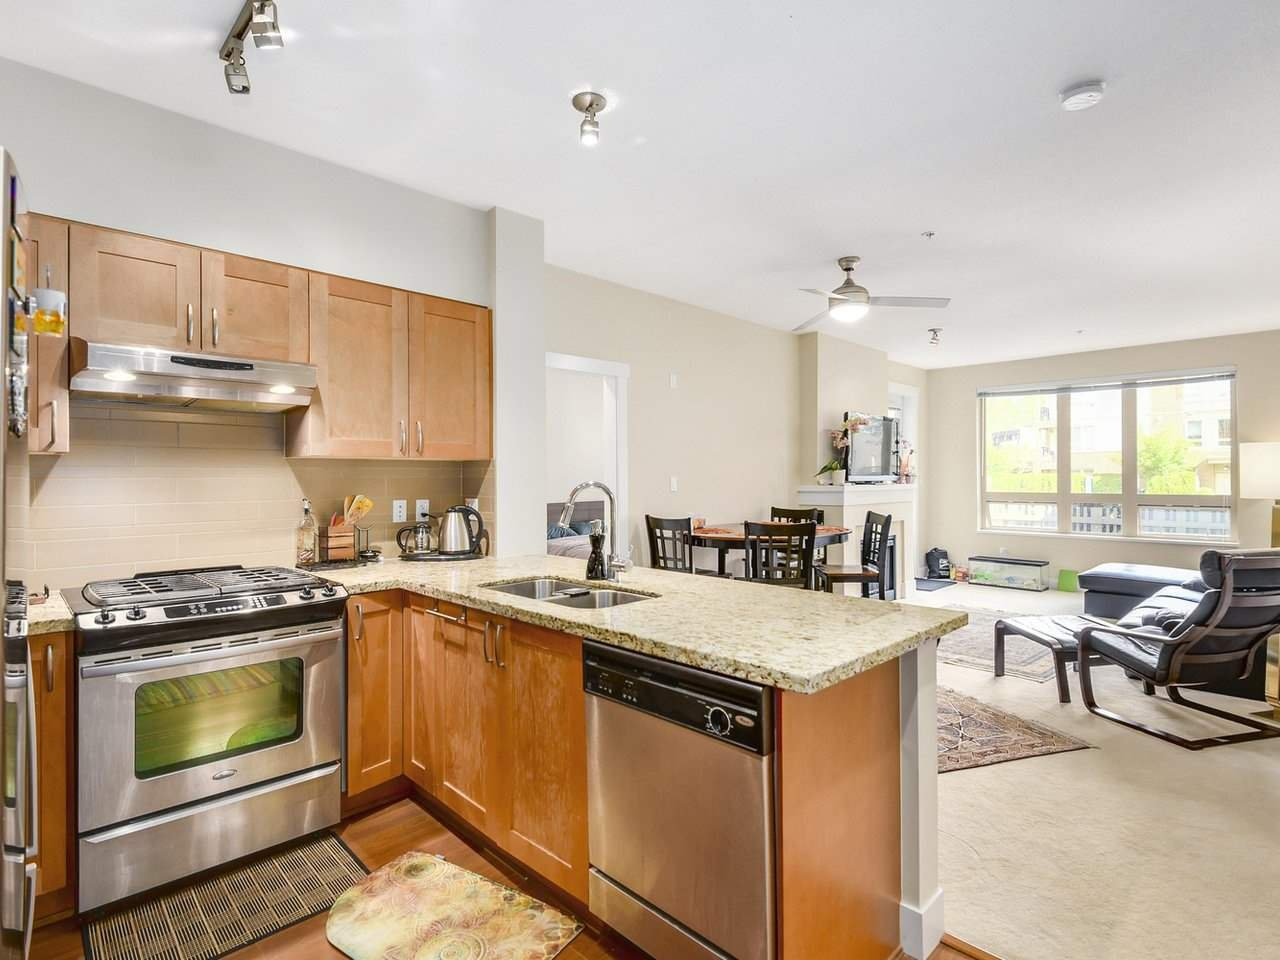 Photo 4: Photos: 106 2601 WHITELEY COURT in North Vancouver: Lynn Valley Condo for sale : MLS®# R2186381